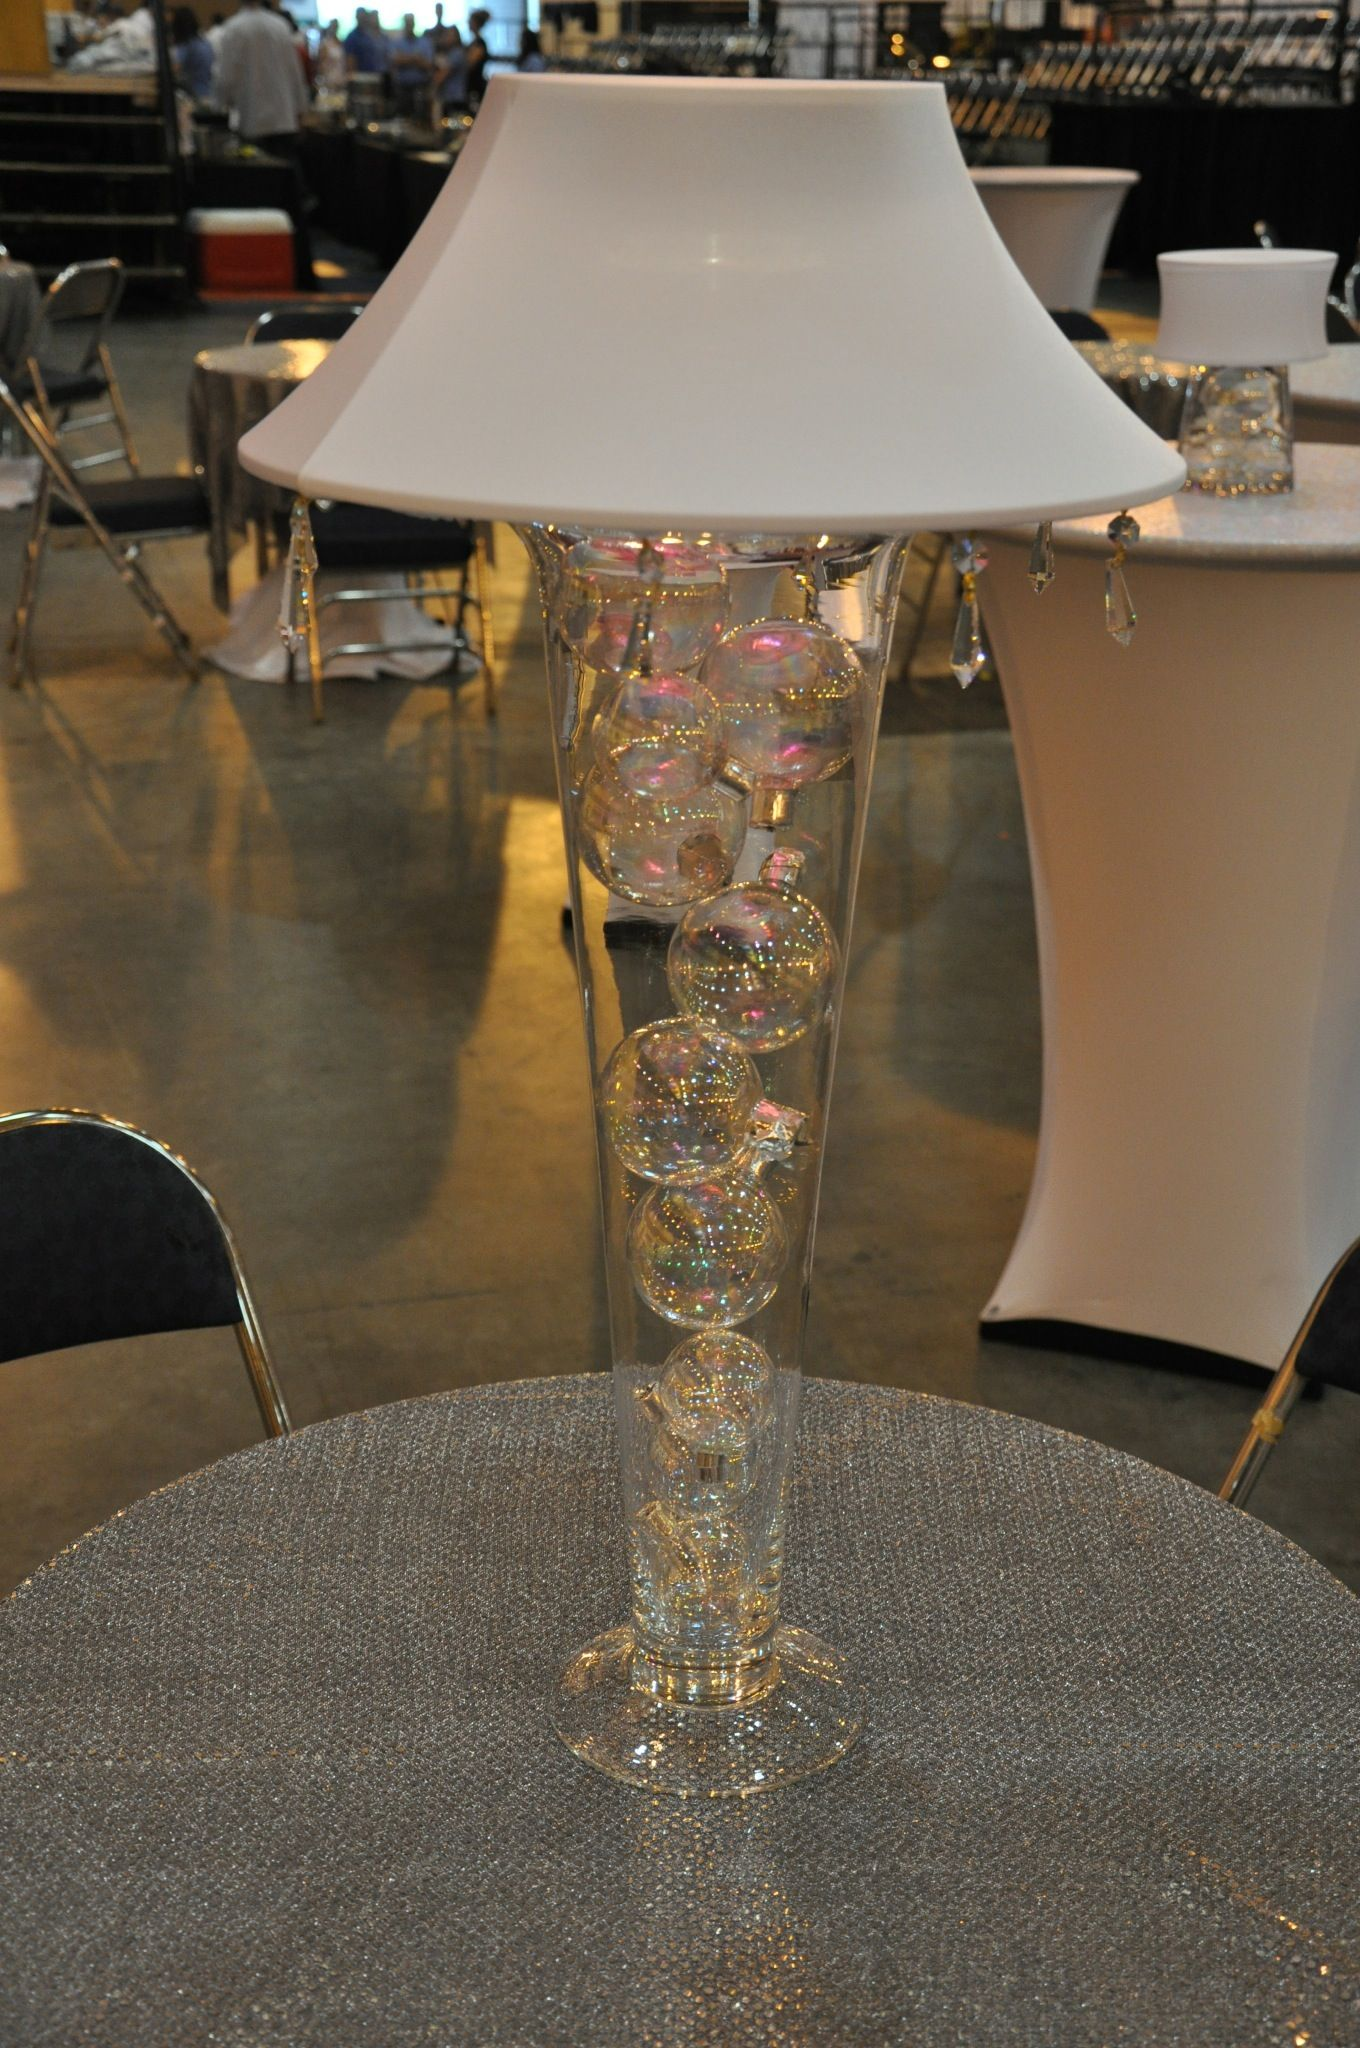 Great for a New Year's Eve or Christmas Party...Glass filled with ornaments and a lighted lampshade. To get this look, please visit www.fancyfaces.com